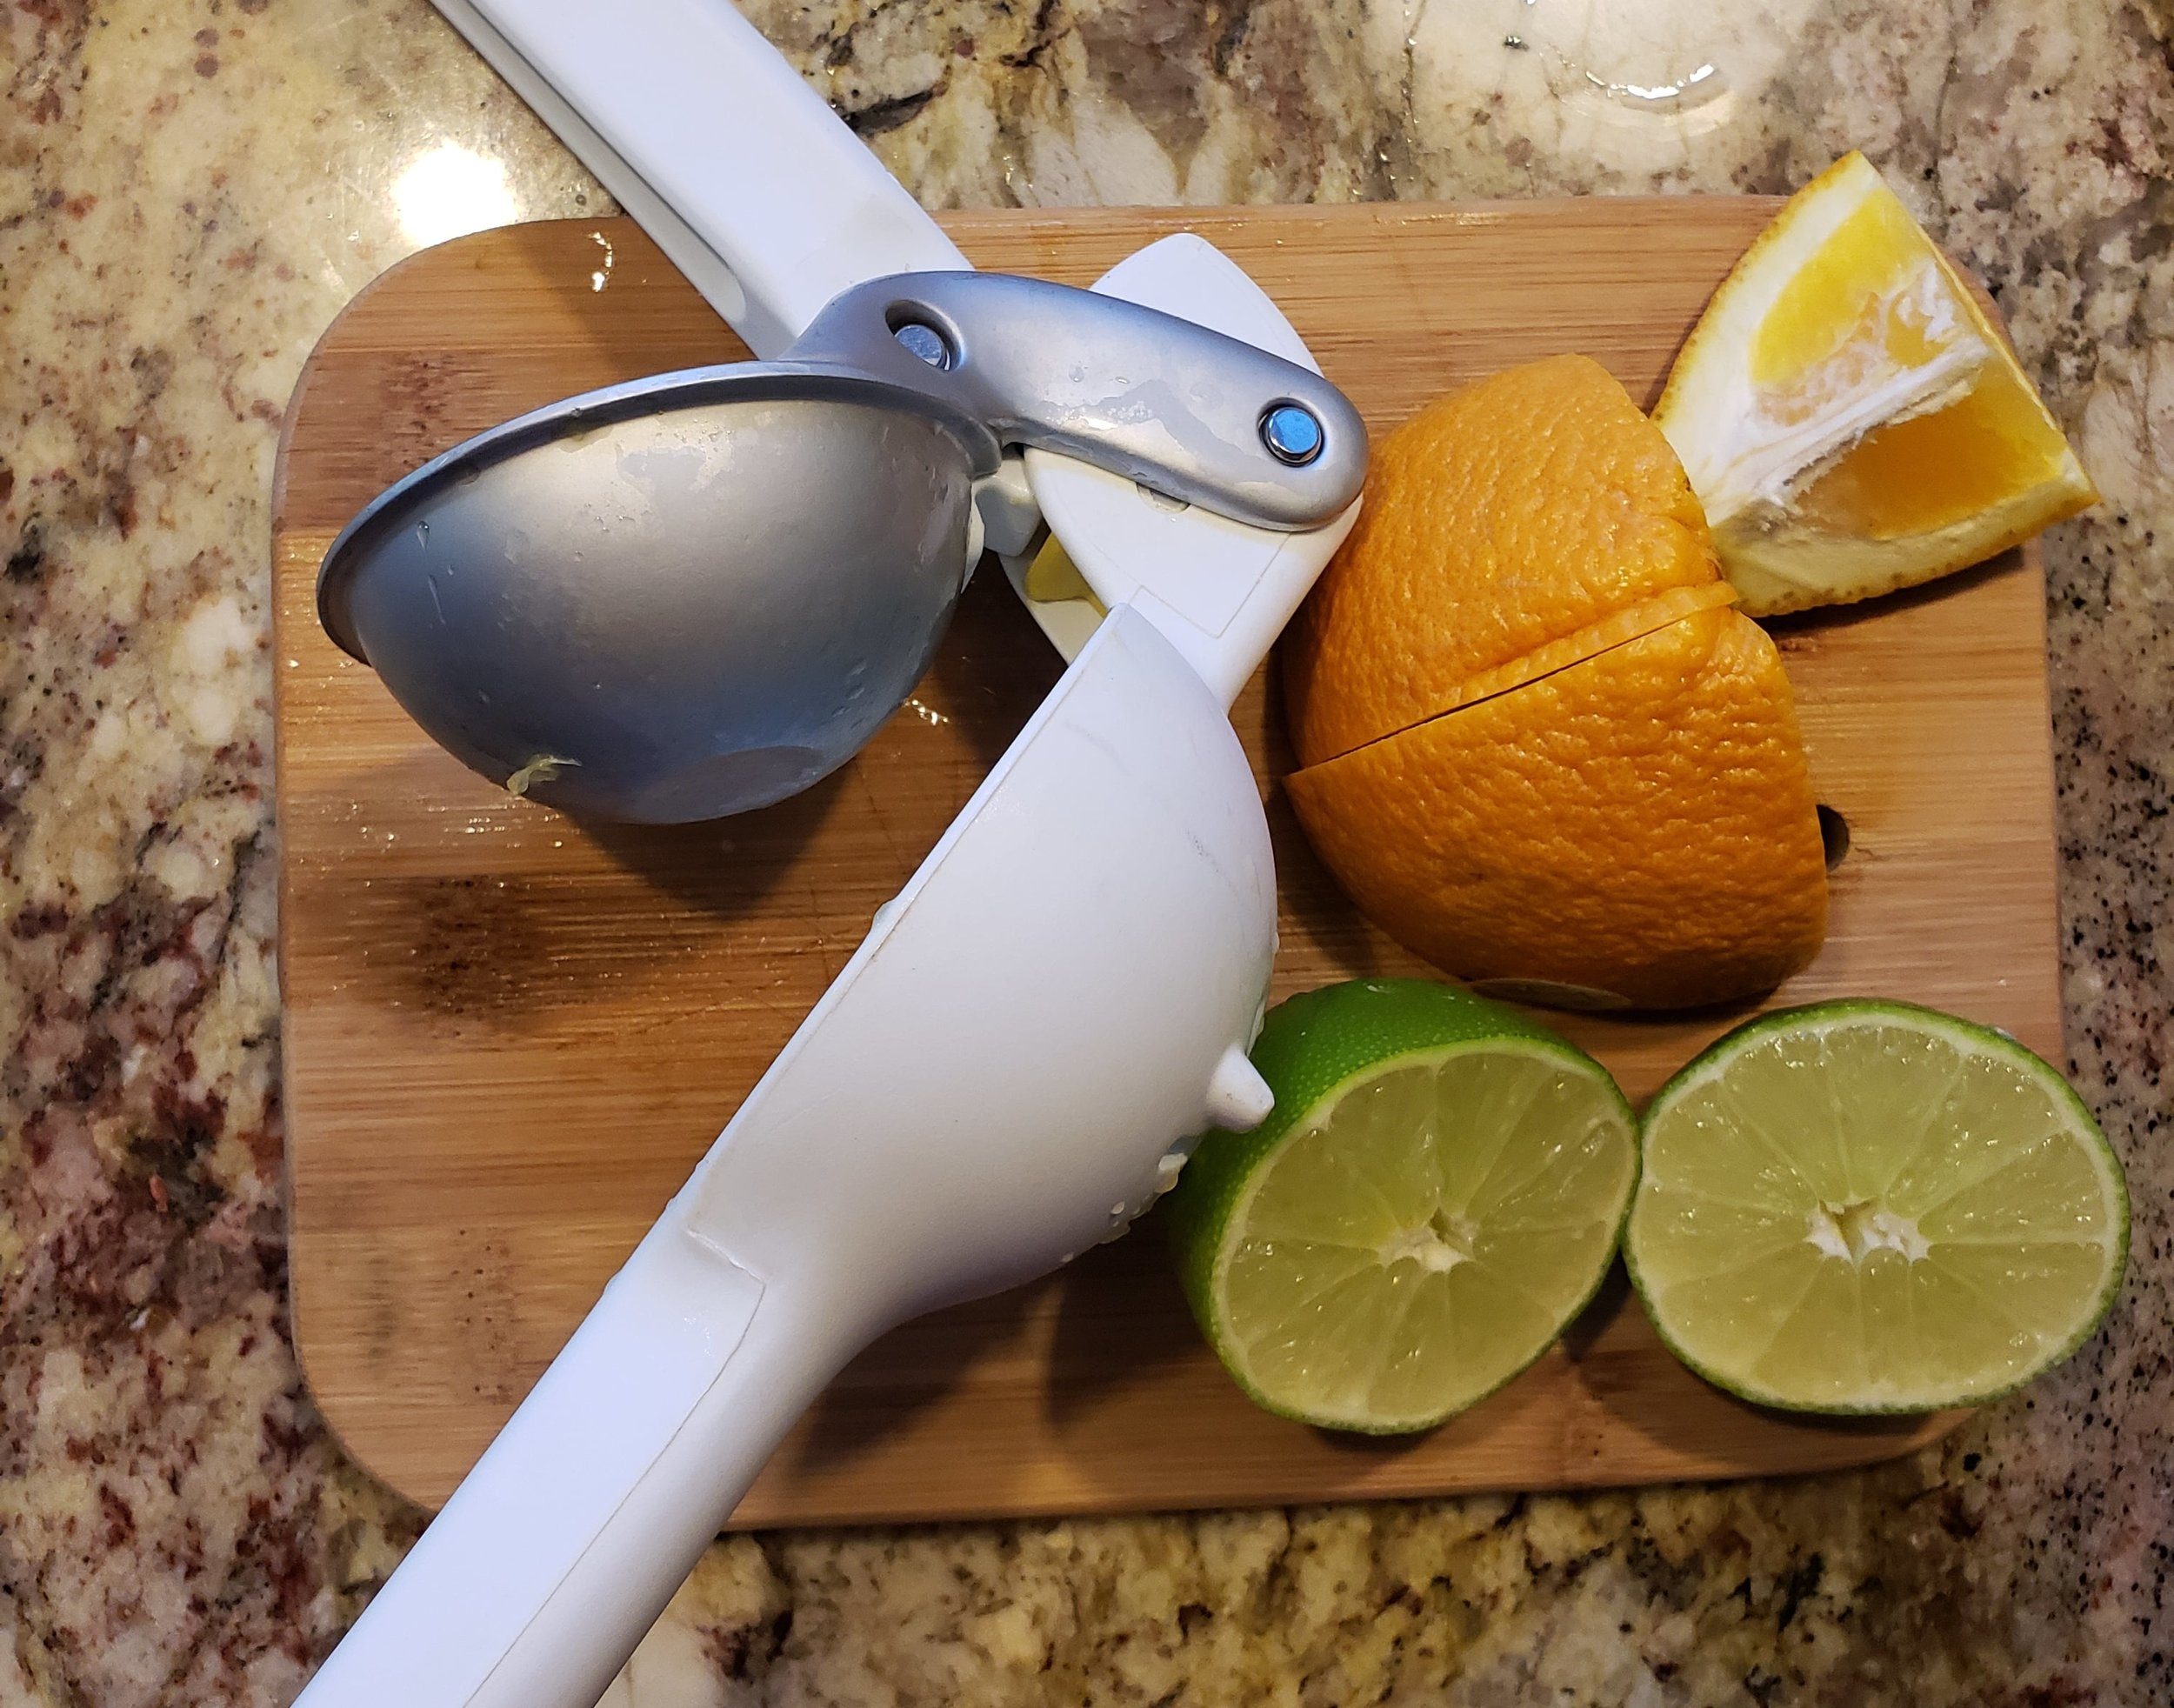 Hand citrus juicer with fresh sliced oranges and limes.